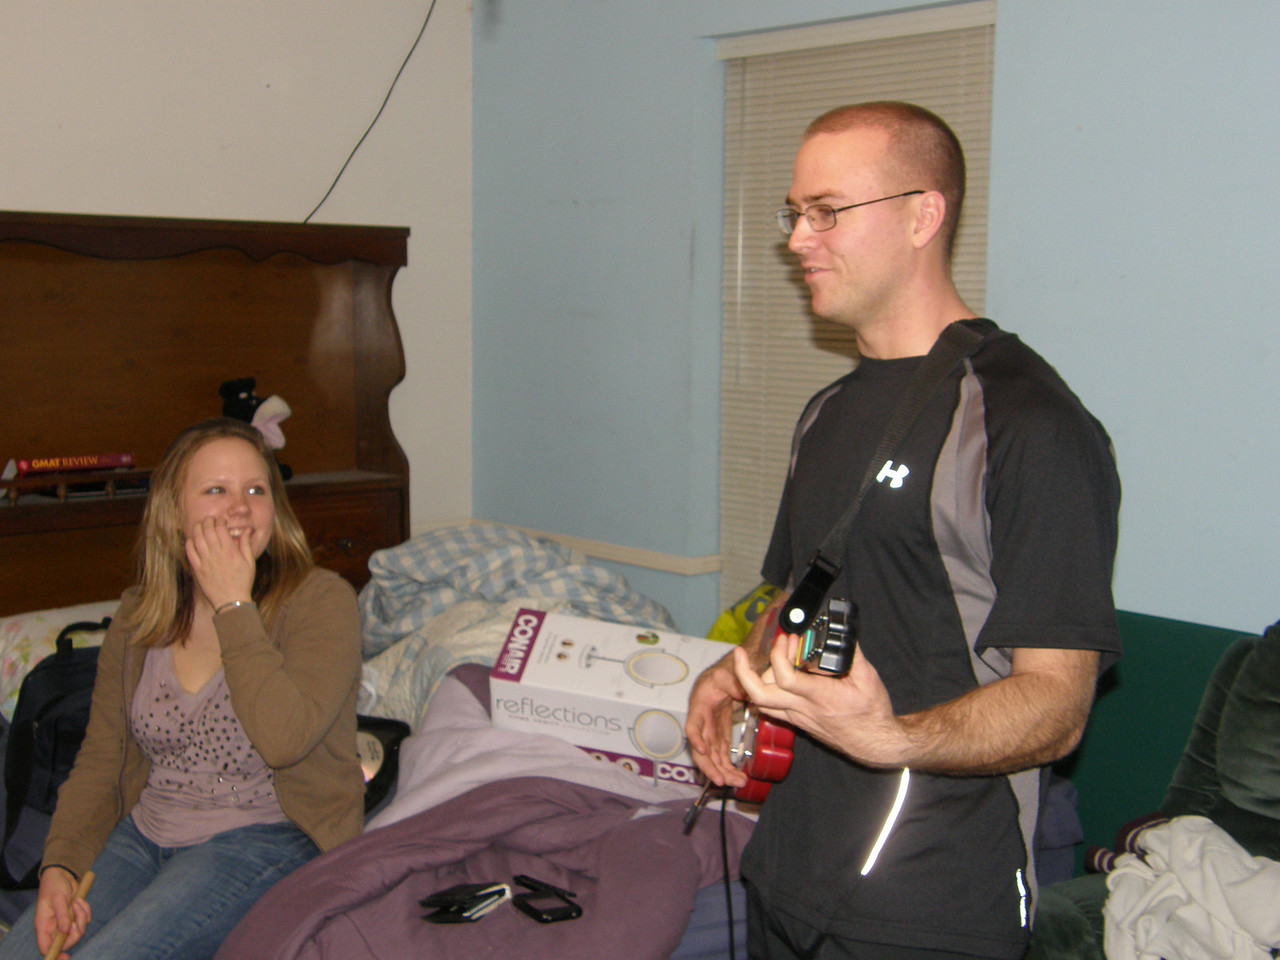 Katie and Luke discuss the finer points of Guitar Hero.